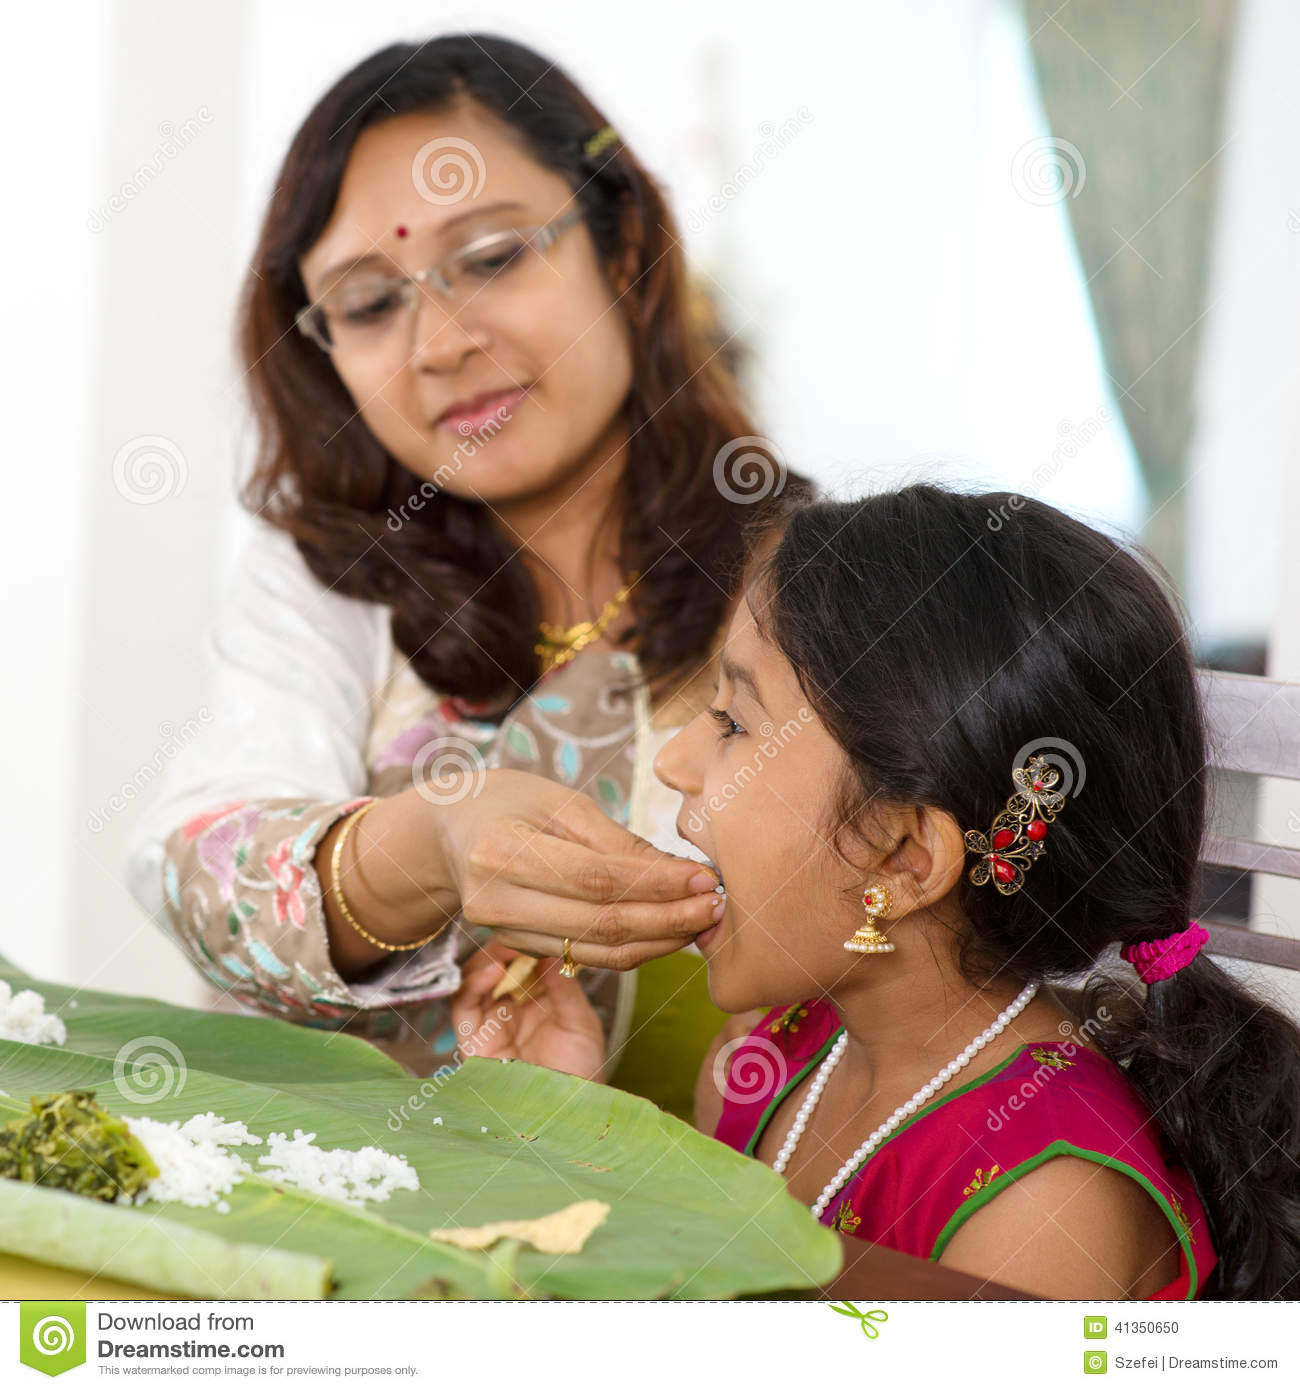 Indian Family Dining At Home Candid Photo Of Asian Mother Feeding Rice To Child With Hand India Culture